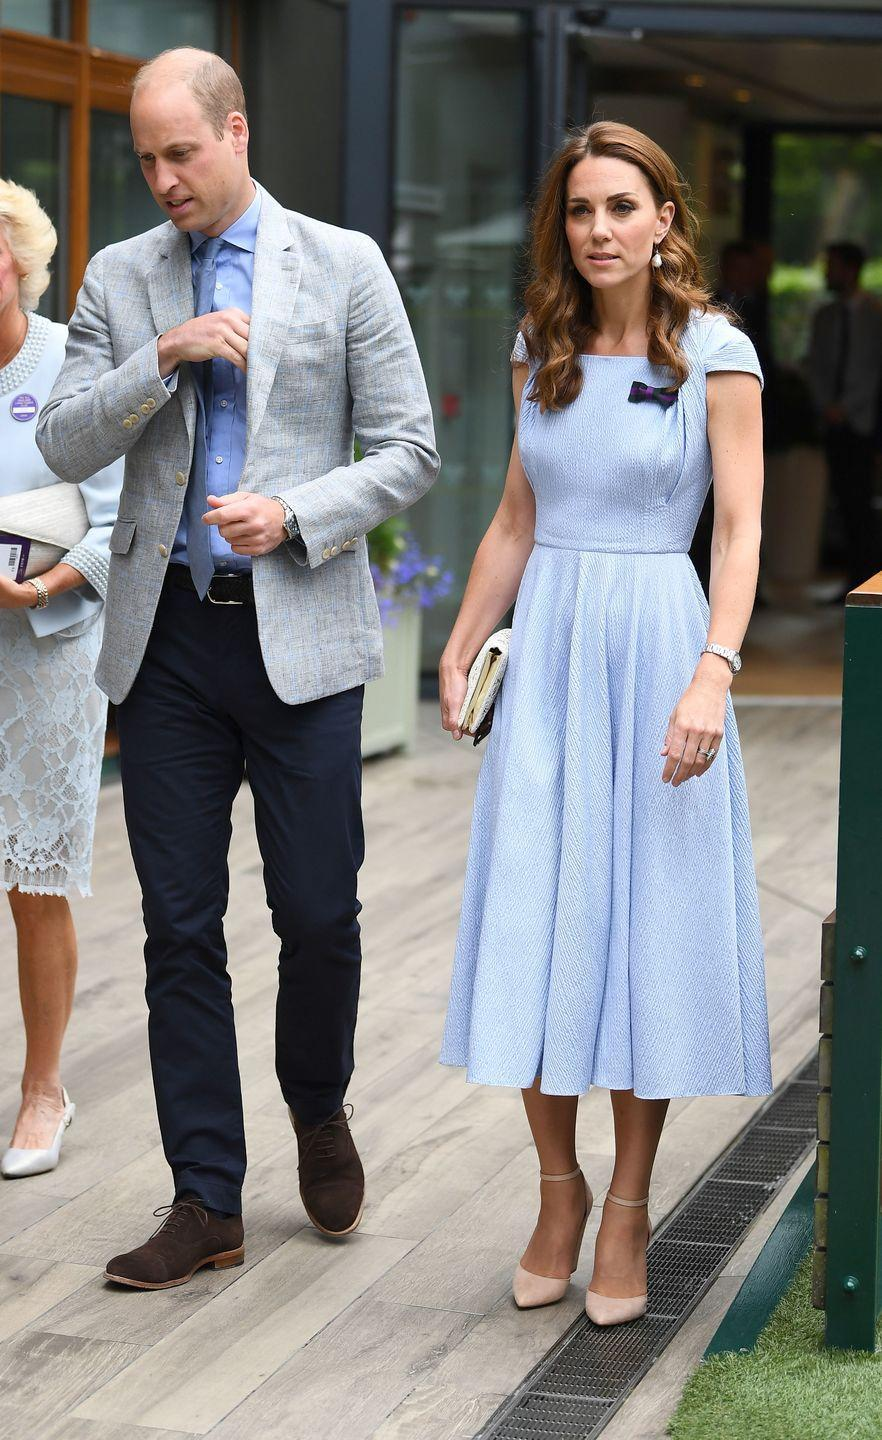 <p>The Duke and Duchess of Cambridge attend the Men's Singles Final with Kate wearing an Emilia Wickstead light blue midi dress paired with Aldo 'Nicholes' heels in Bone.</p>